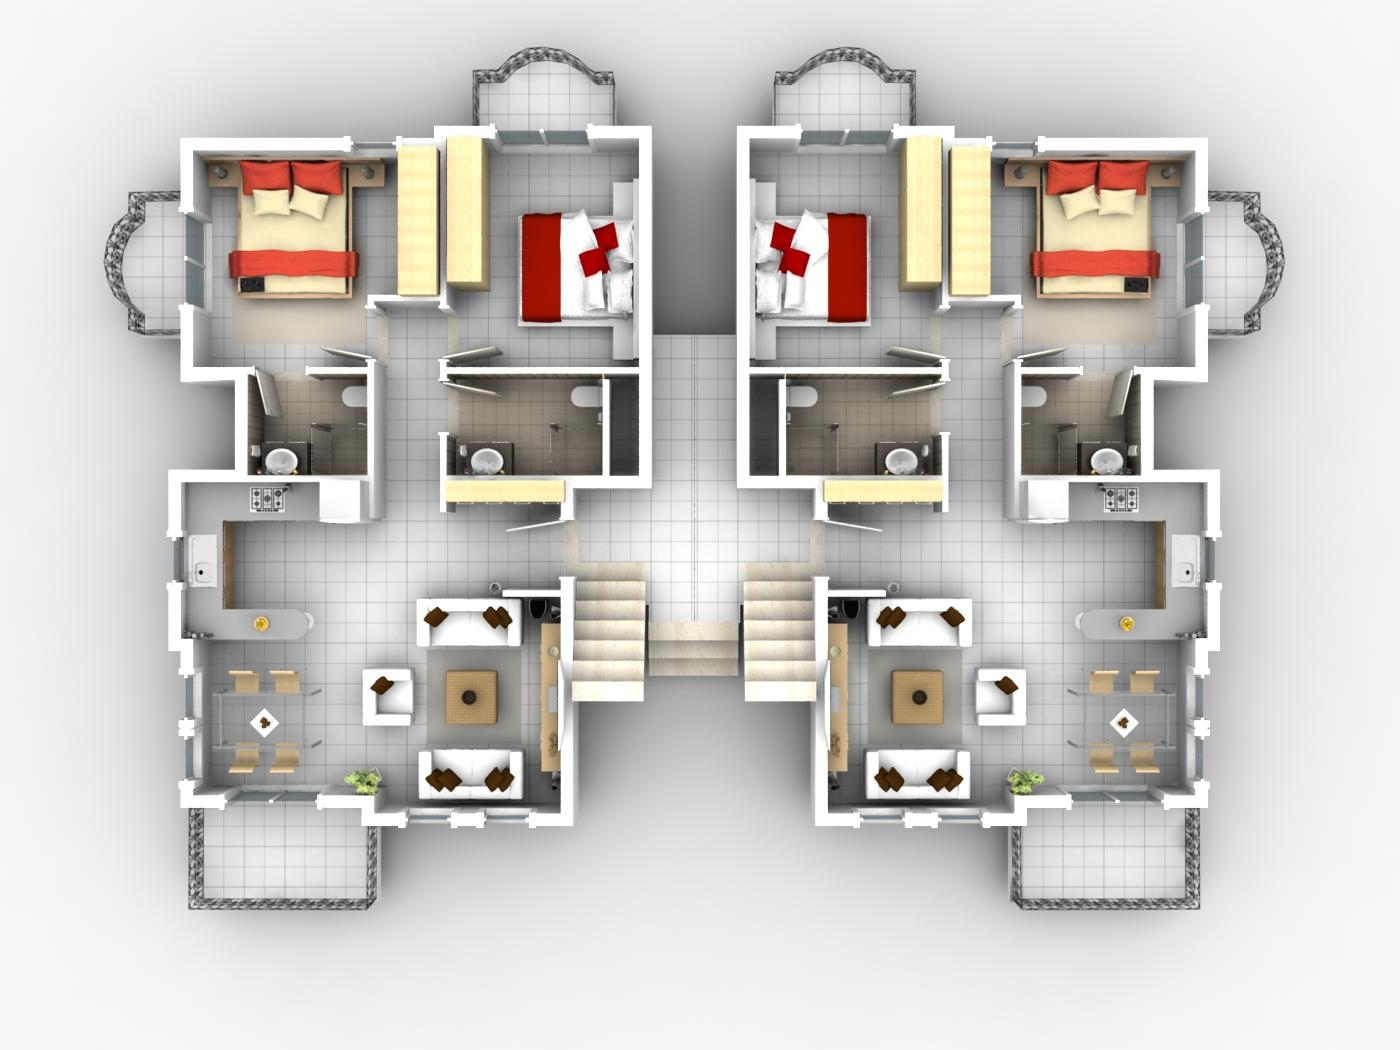 Architecture Other Rome Apartments Floor Plans Architecture Design within Best Layout For Lakeview Gardens Apartments Design Ideas